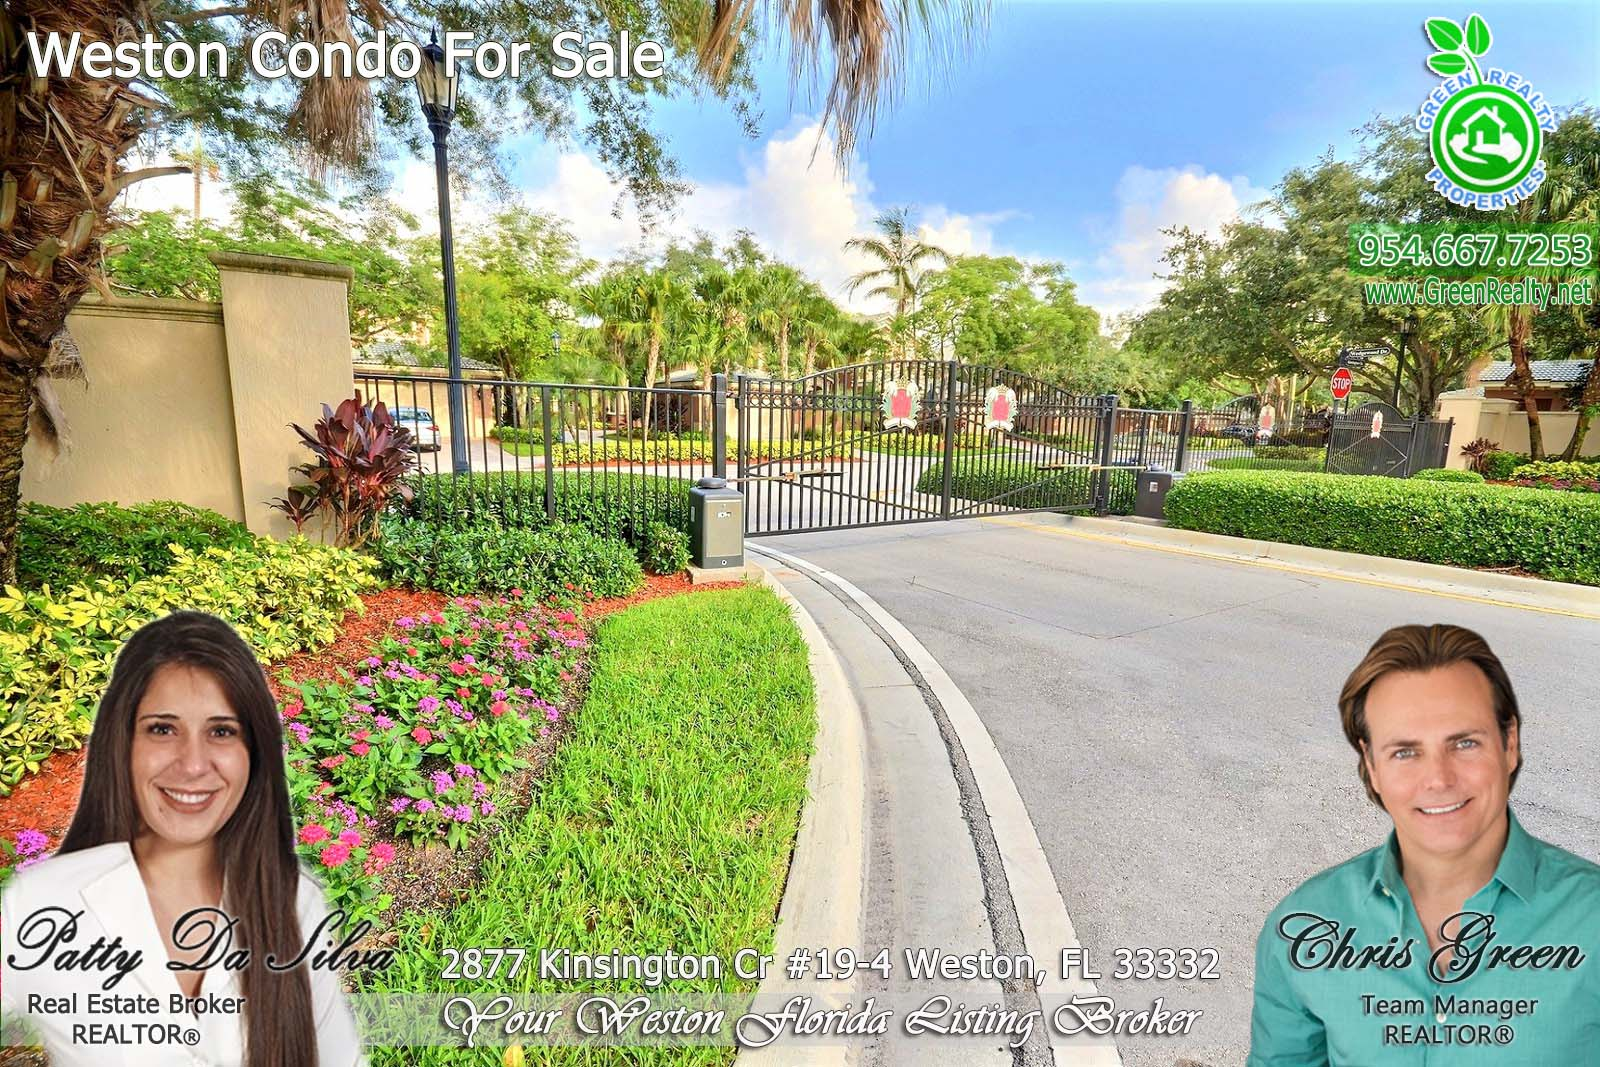 30 Homes For Sale in Weston Florida (15)